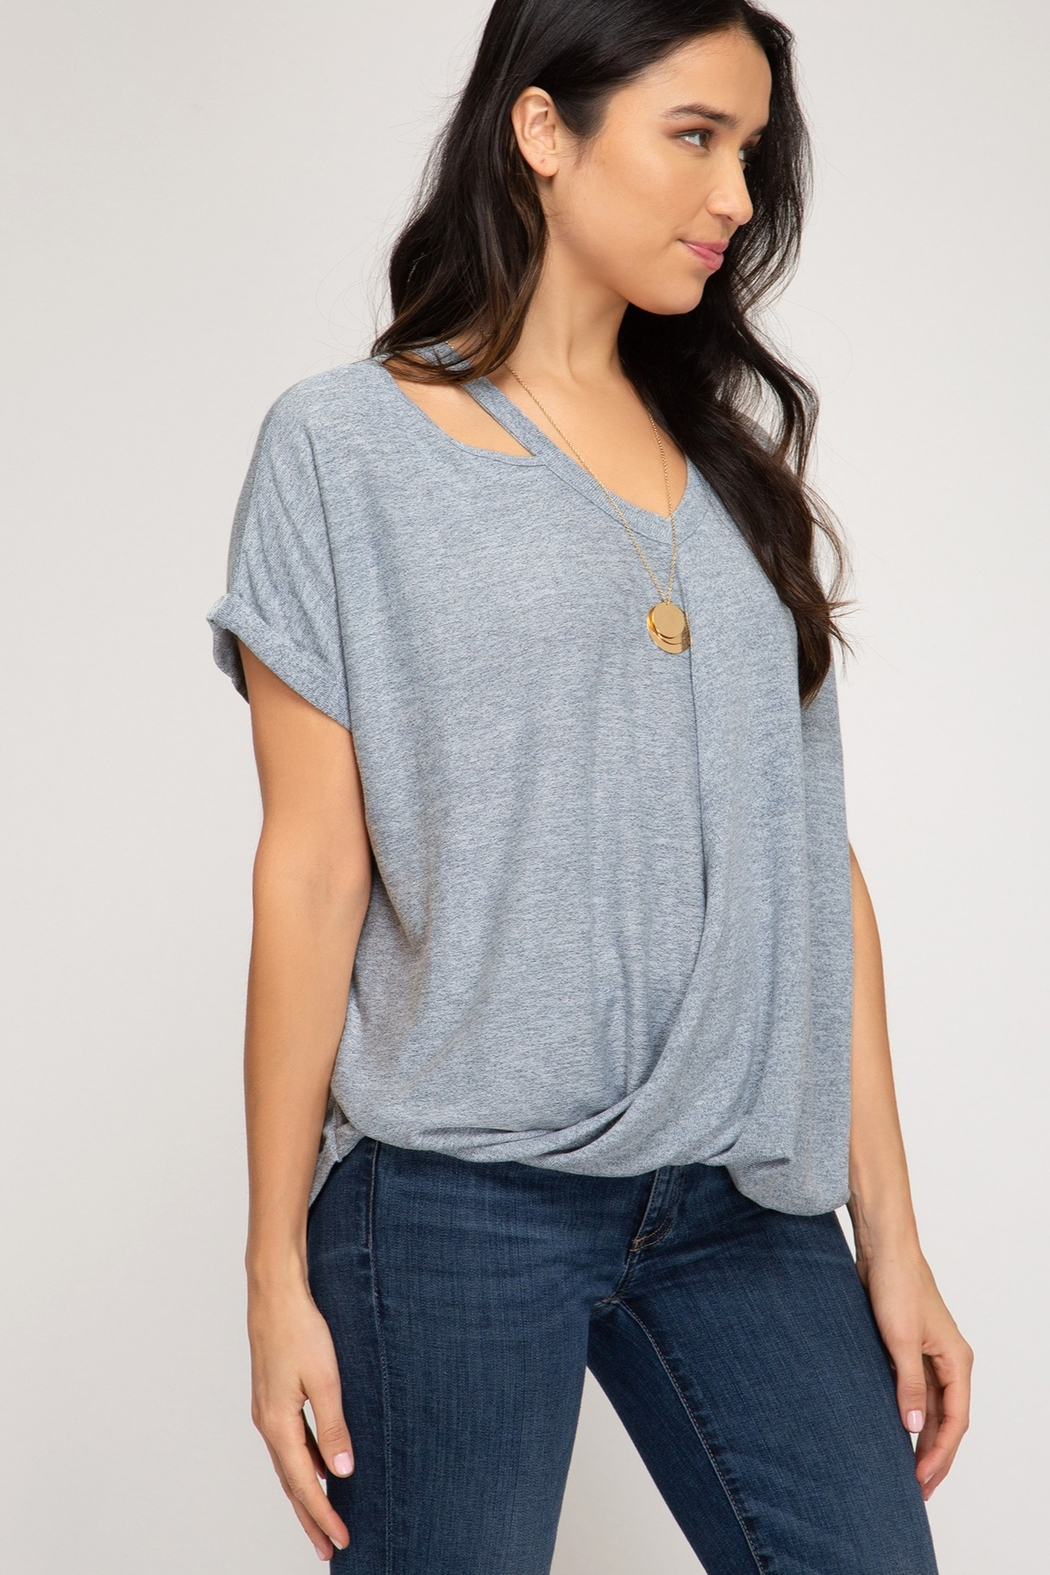 She and Sky Surpliced Top With Neck Cutouts - Side Cropped Image